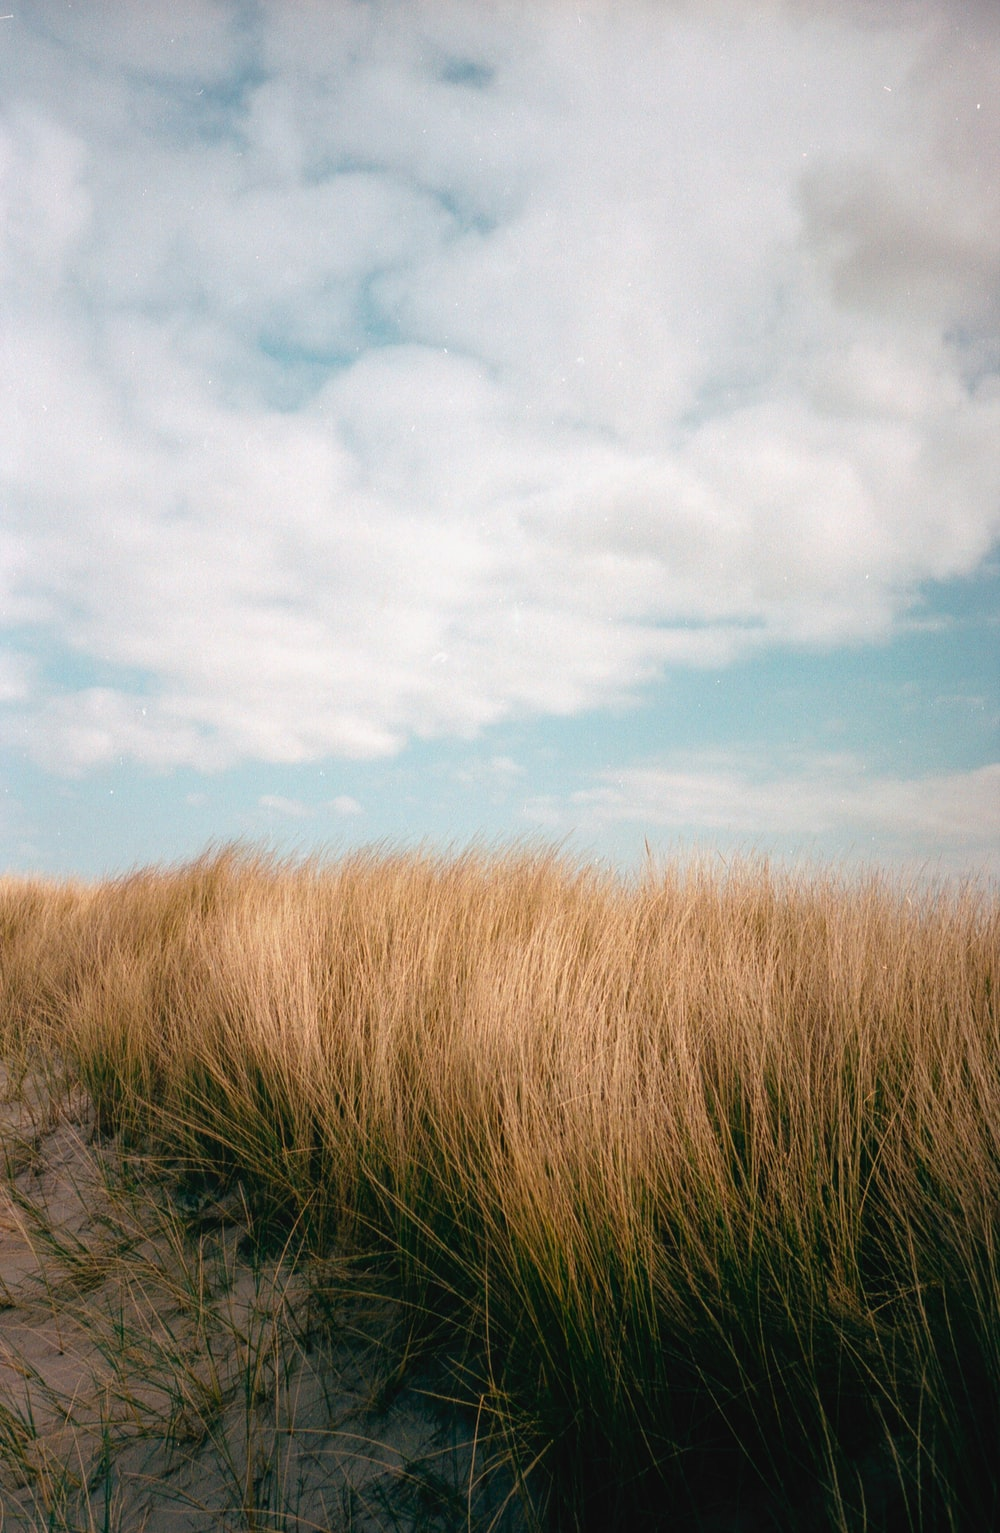 brown grass field under white clouds and blue sky during daytime